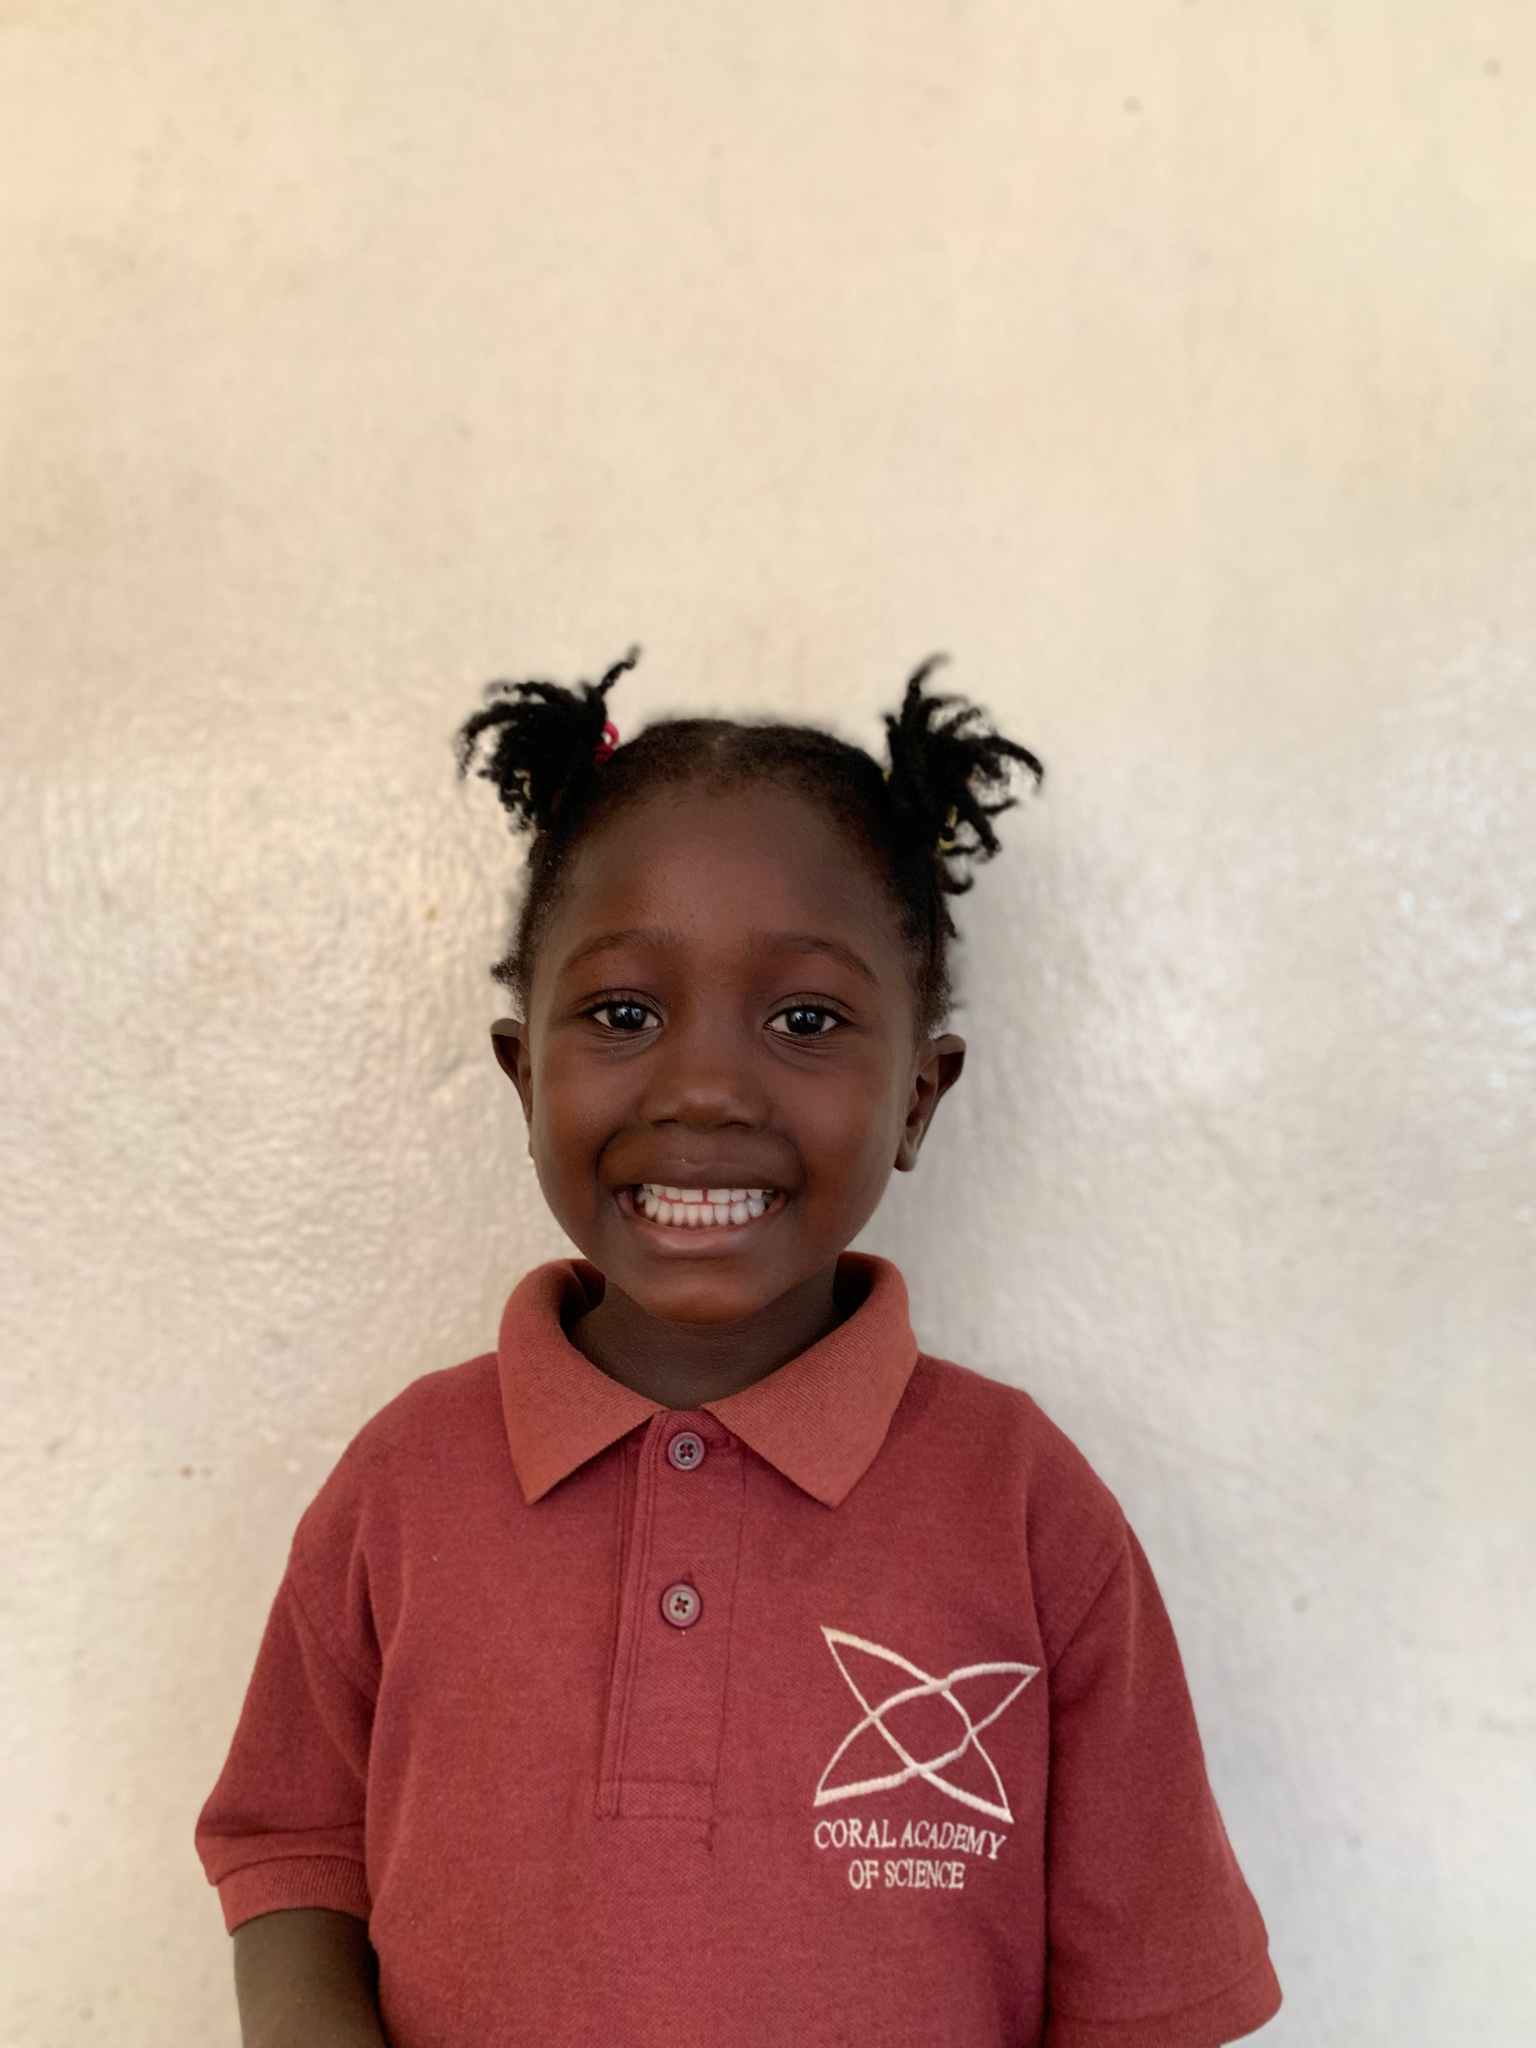 Hello, my name is Cynthia Togba. - Cynthia is a 3-year-old girl.Cynthia lives with her parents and her brother; and loves deer, playing kickball, and the color pink.